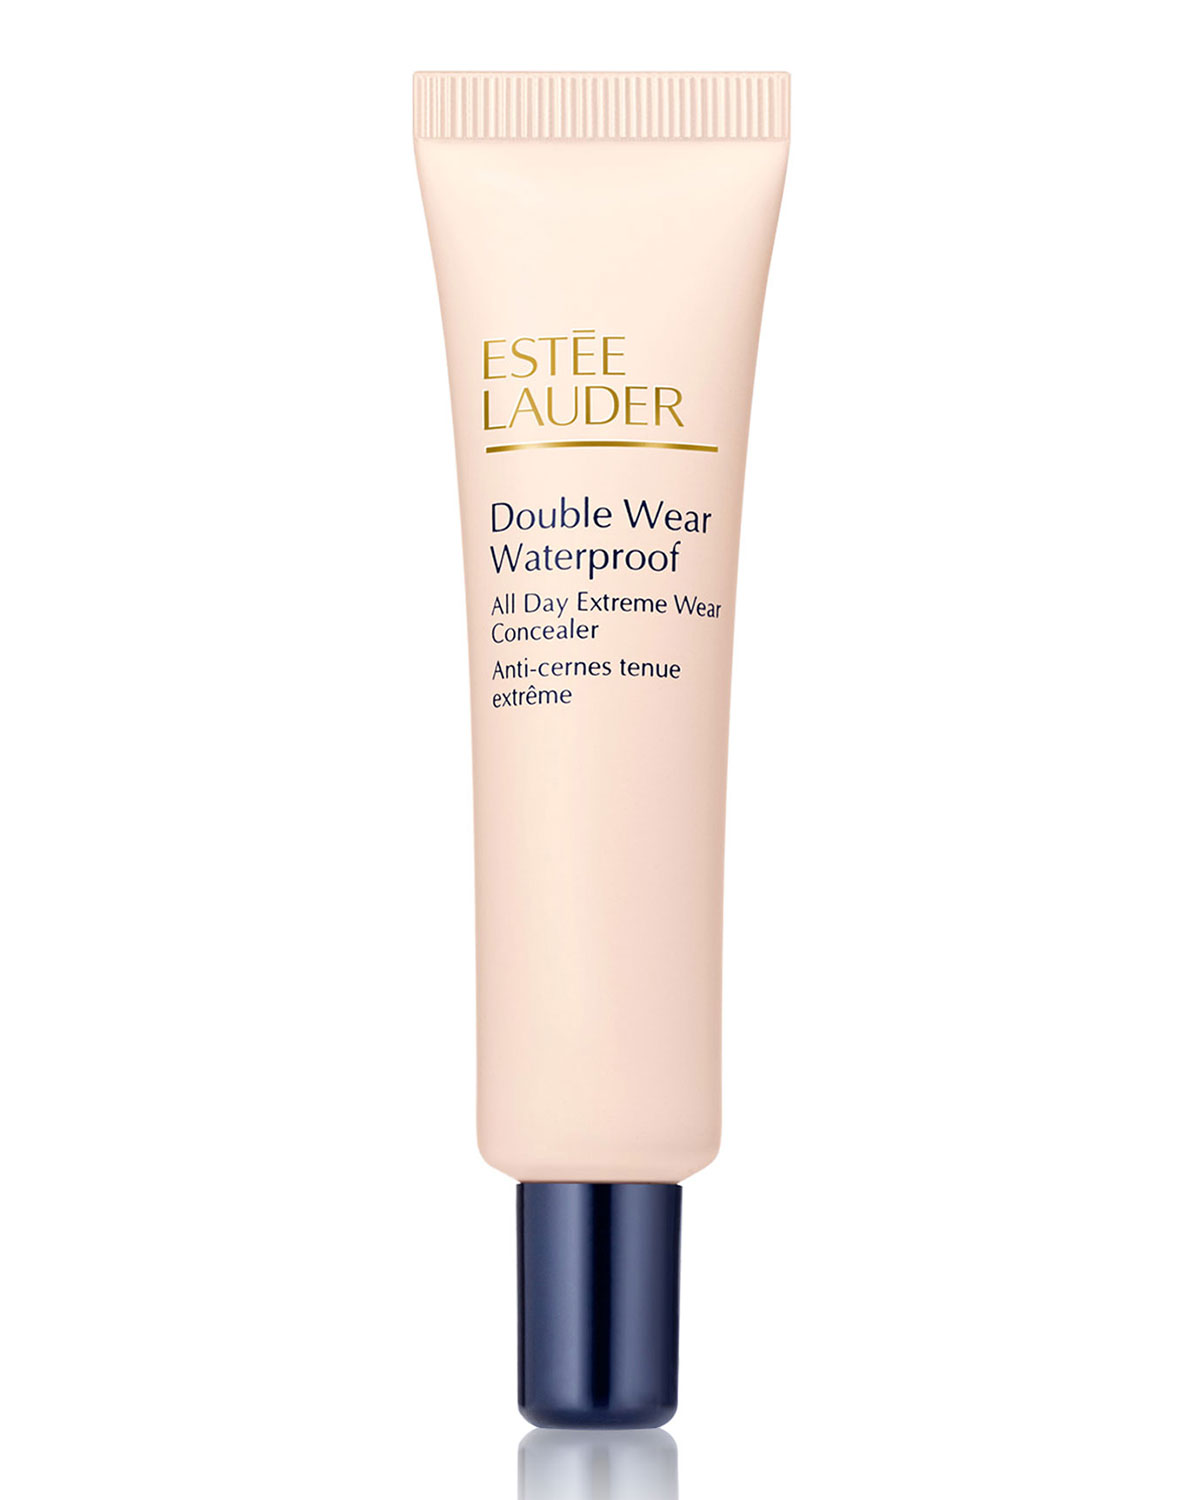 Double Wear Waterproof All Day Extreme Wear Concealer, 2c Light Medium (Cool) - Estee Lauder